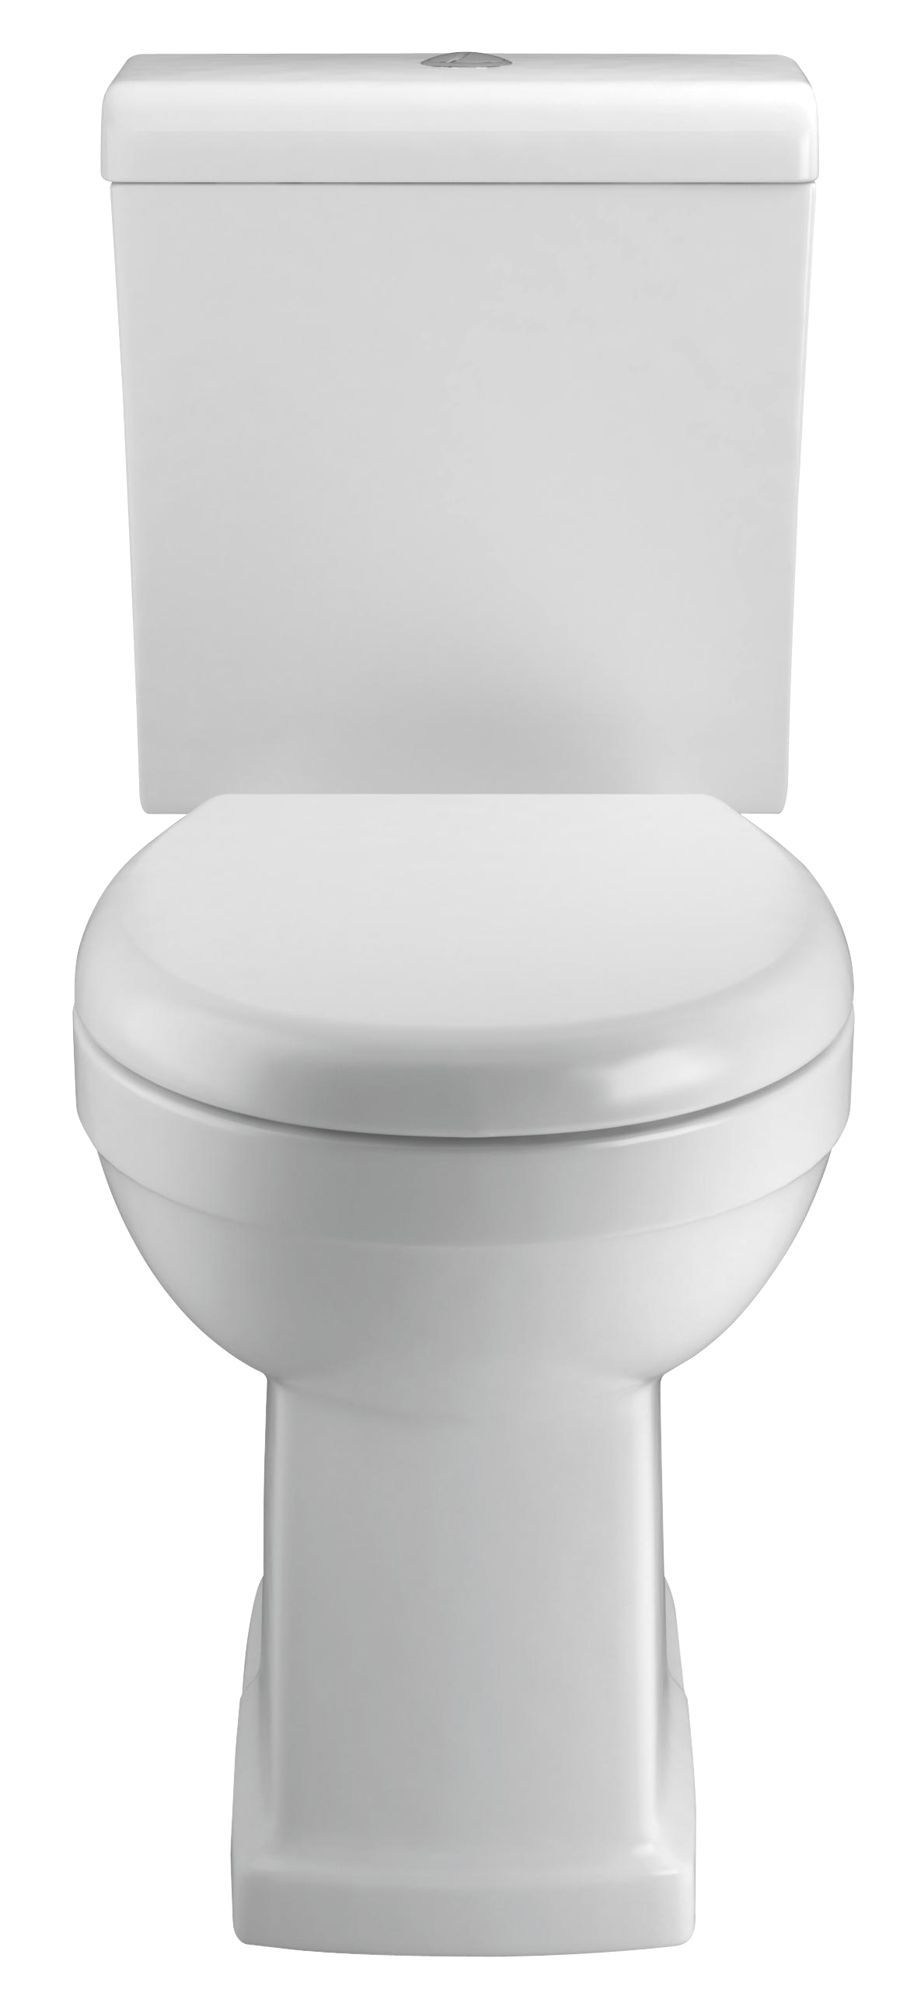 Cooke Lewis Somerville Modern Close Coupled Toilet With Soft Close